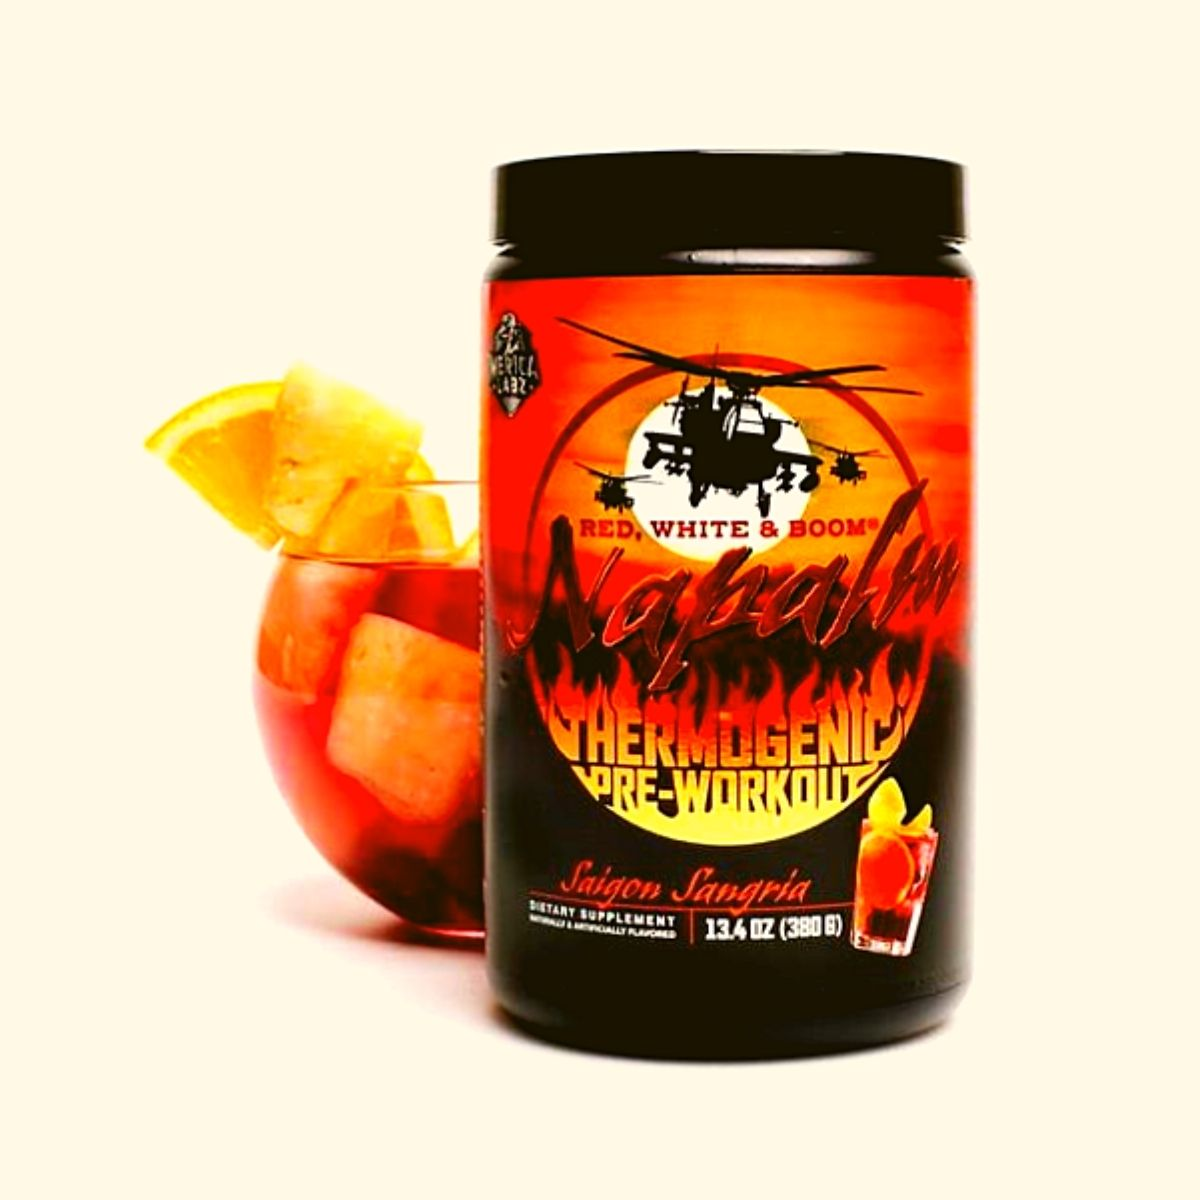 Merica Labz New Thermogenic Pre-Workout Gets a New Saigon Sangria Flavor